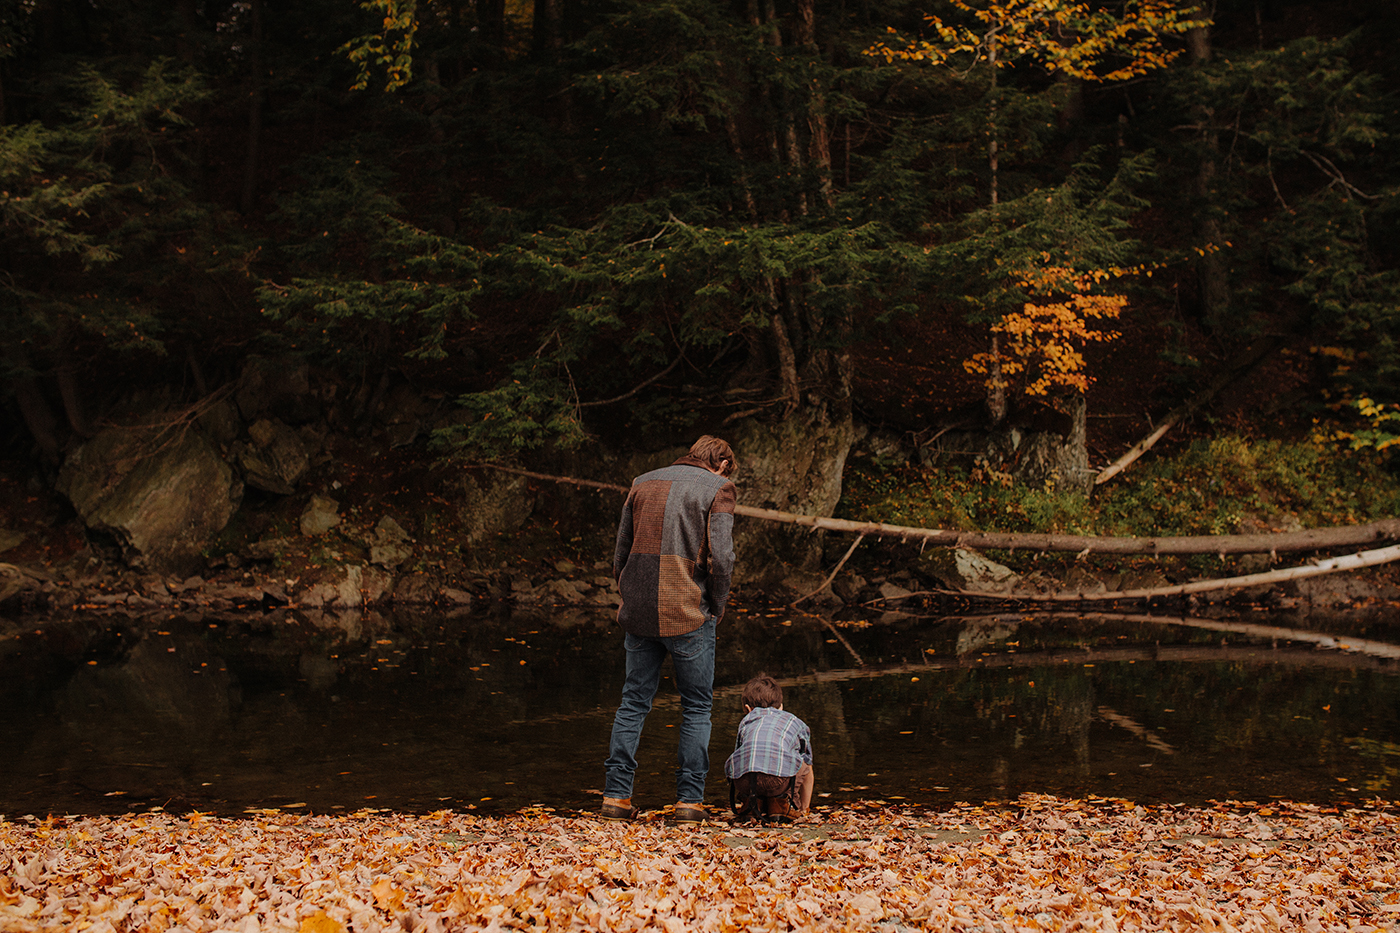 vermont-outdoor-family-portraits-autumn-son-father-river.jpg